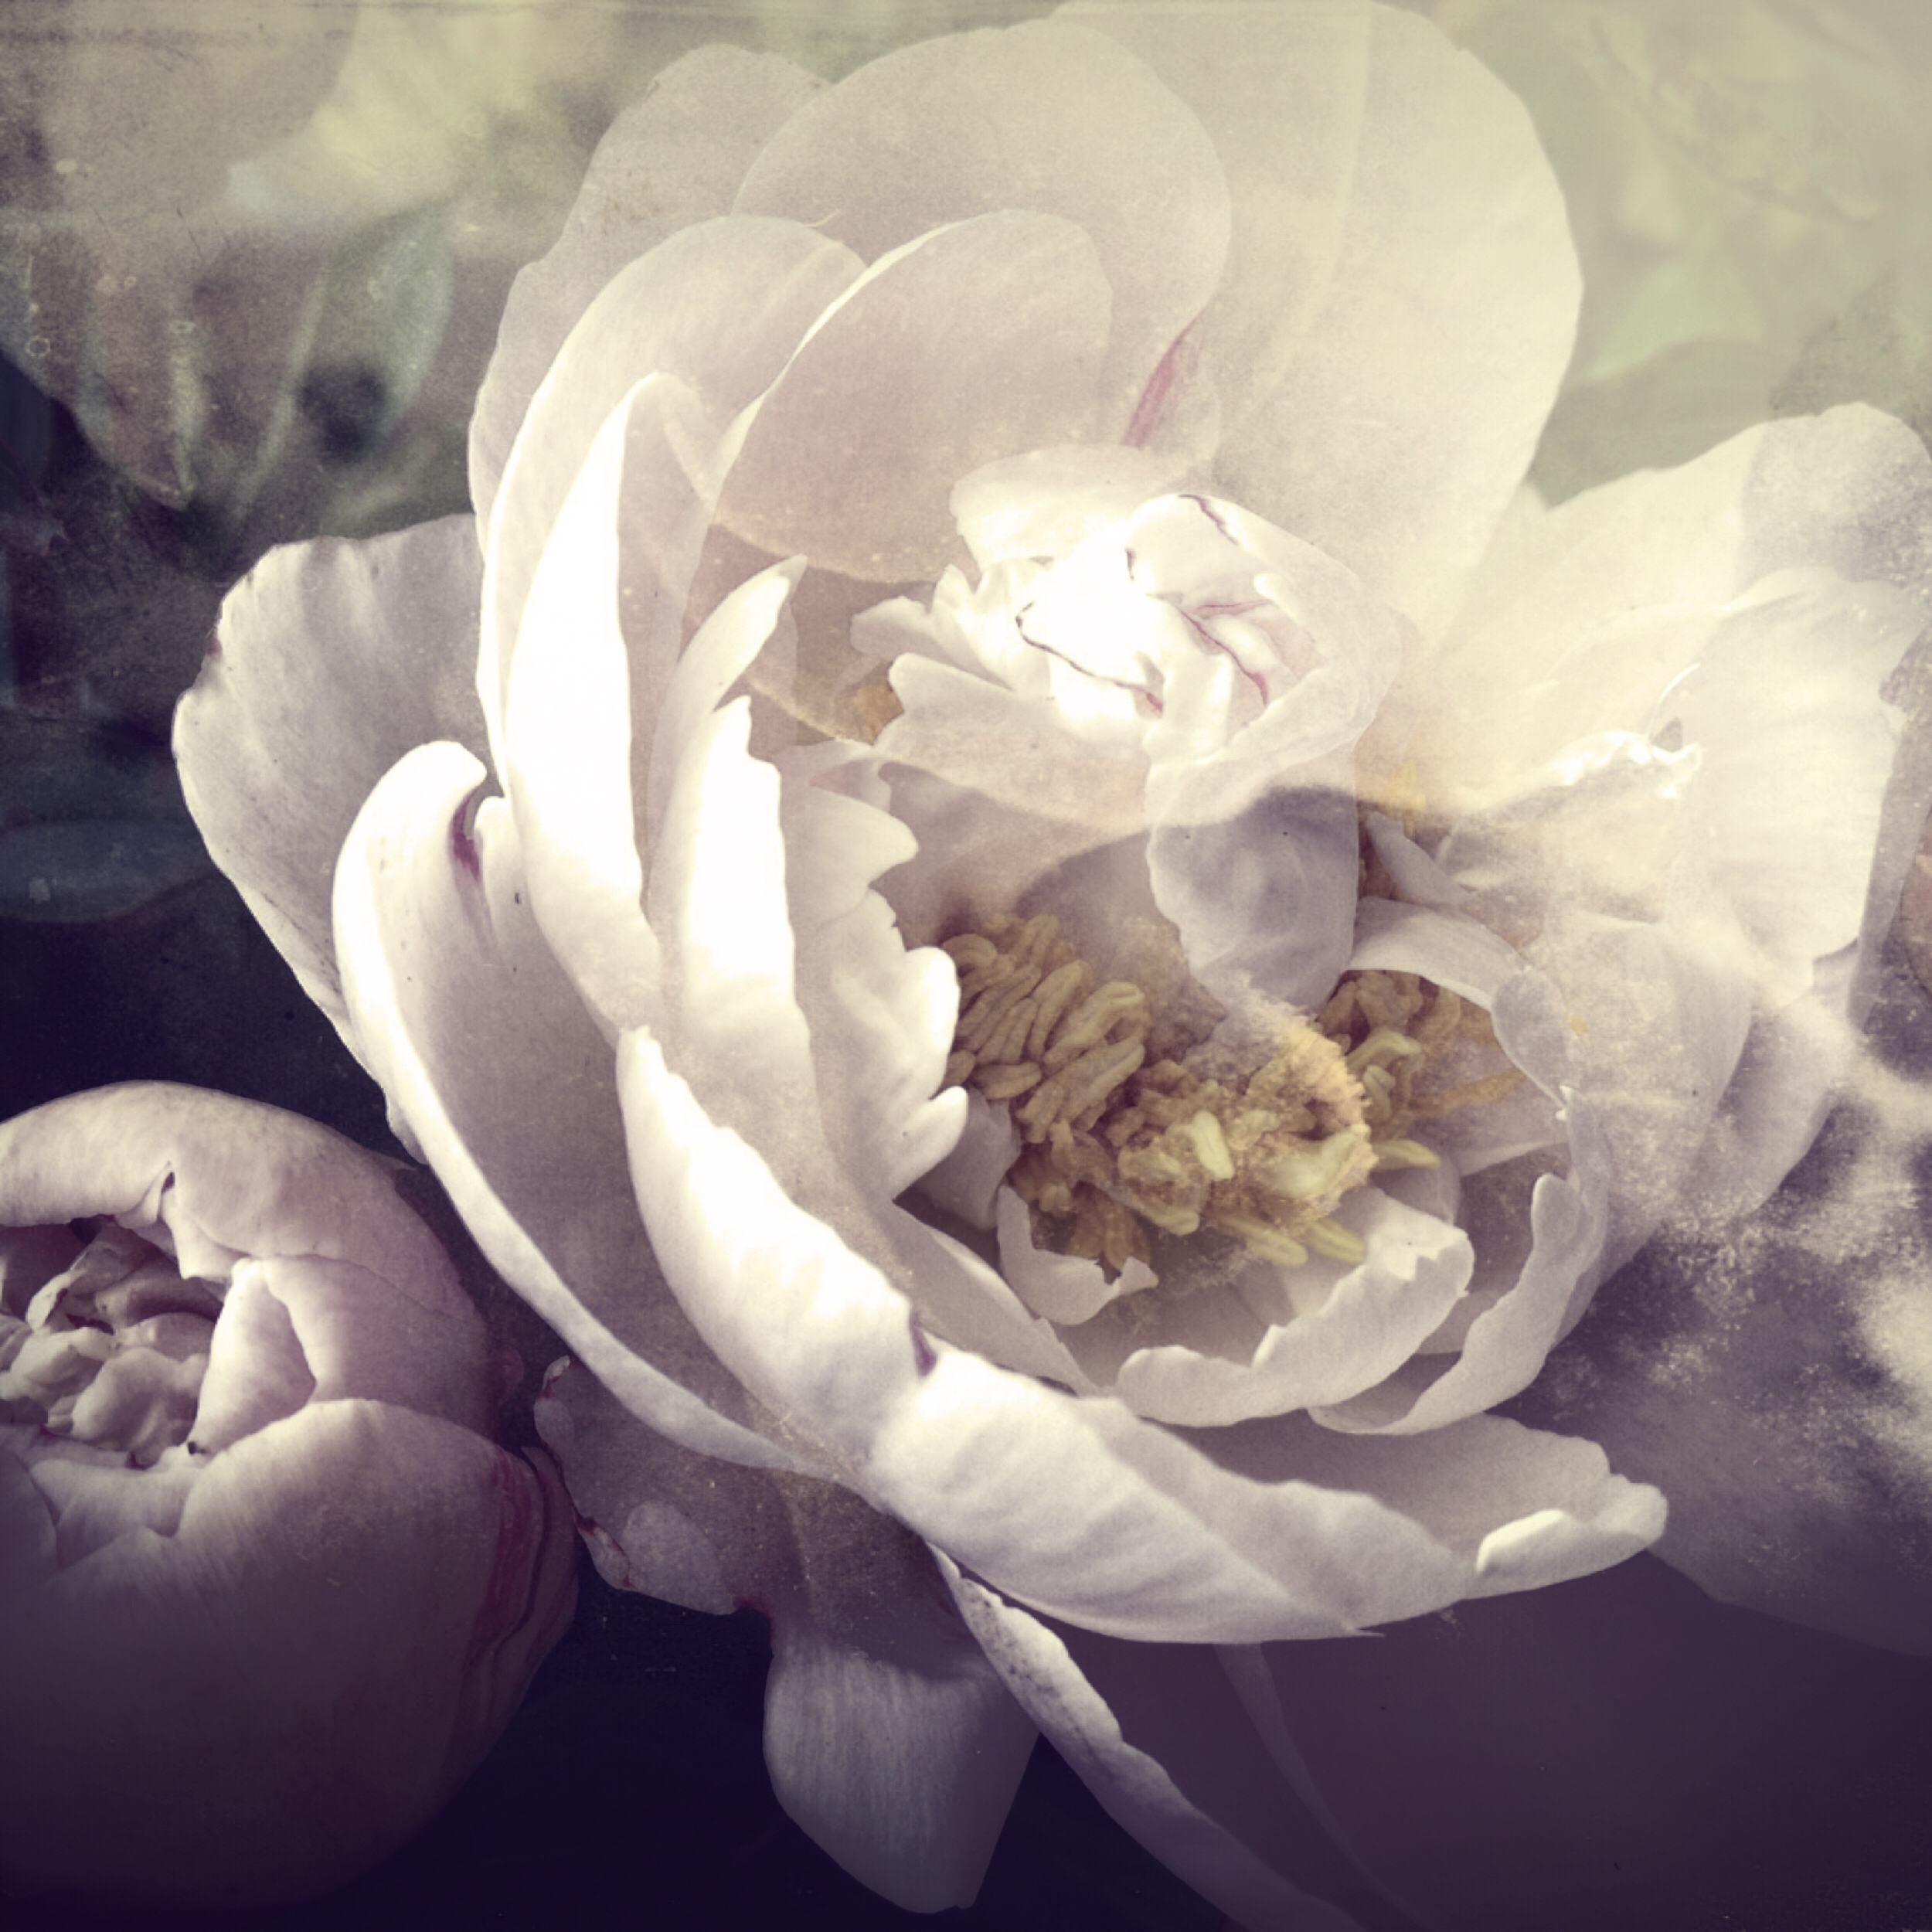 Close-up photograph of a very pale pink peony flower and a bud with a soft focus background and vintage, retro-styled effects.